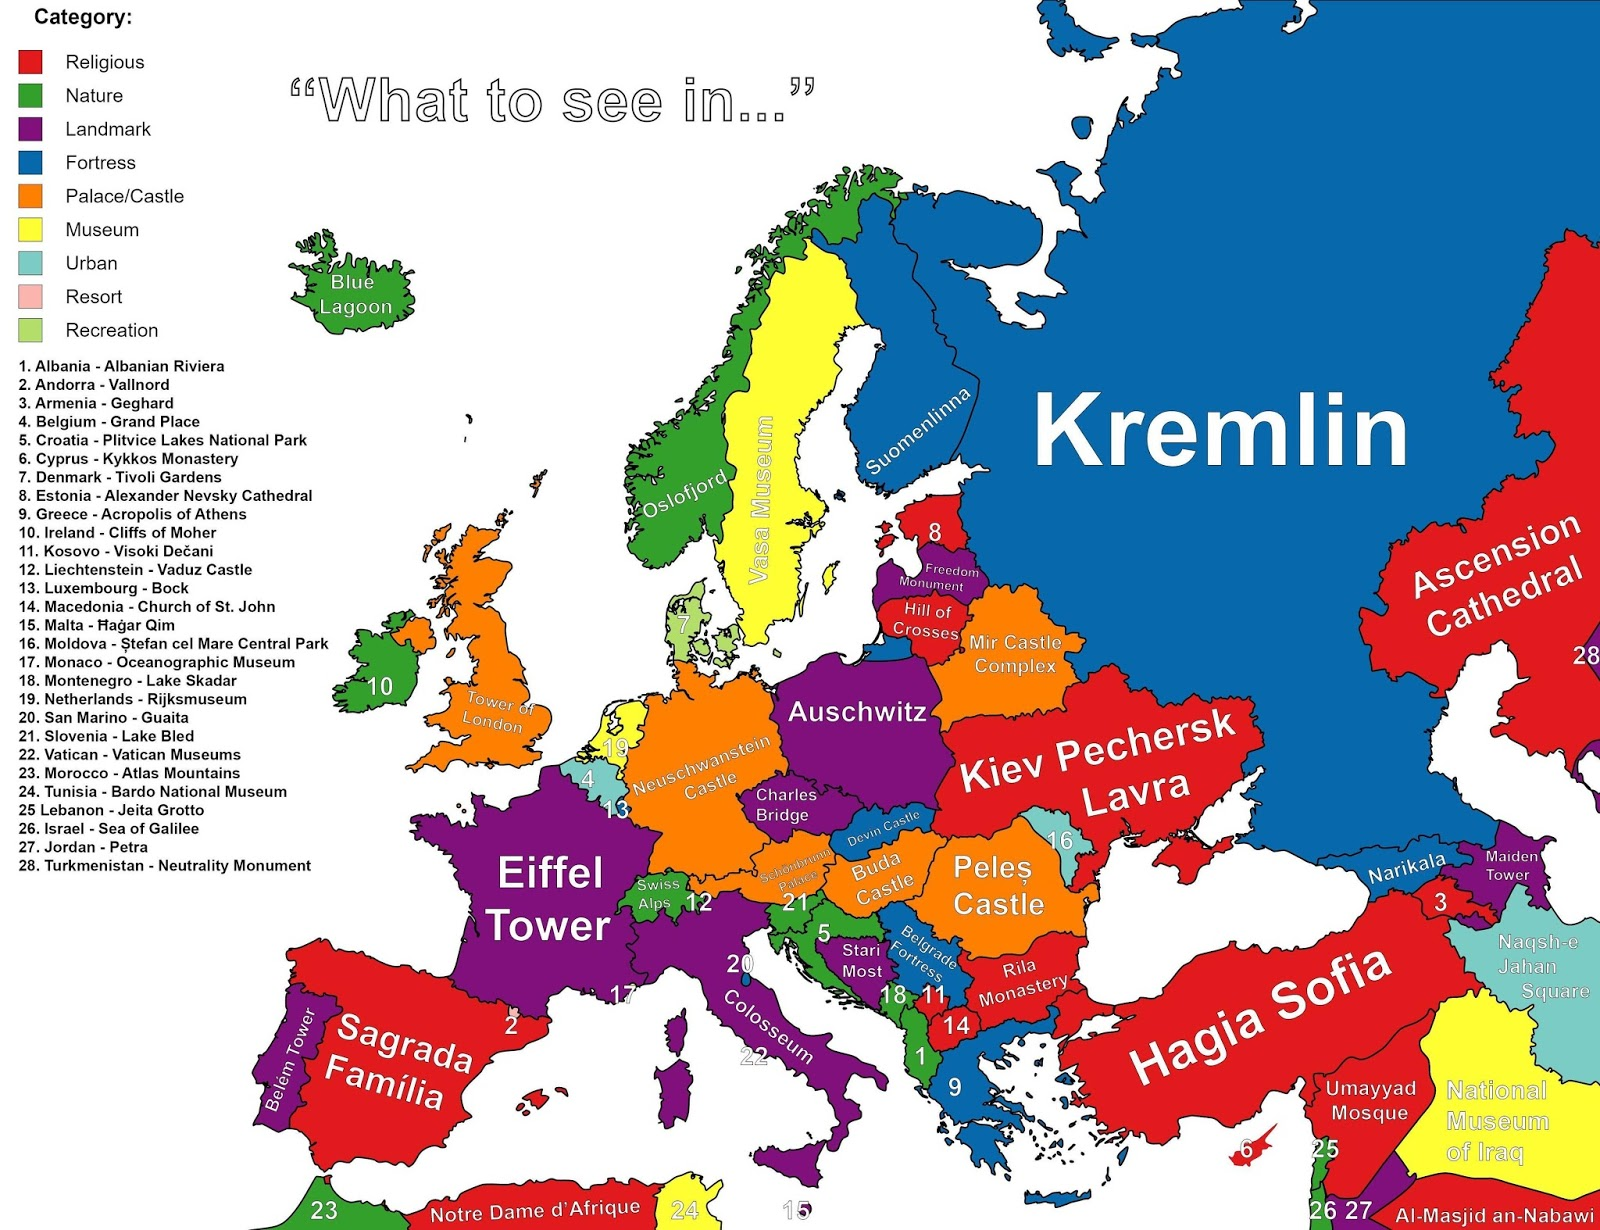 """What to see in..."" autocompleted by Google for each country on this map"